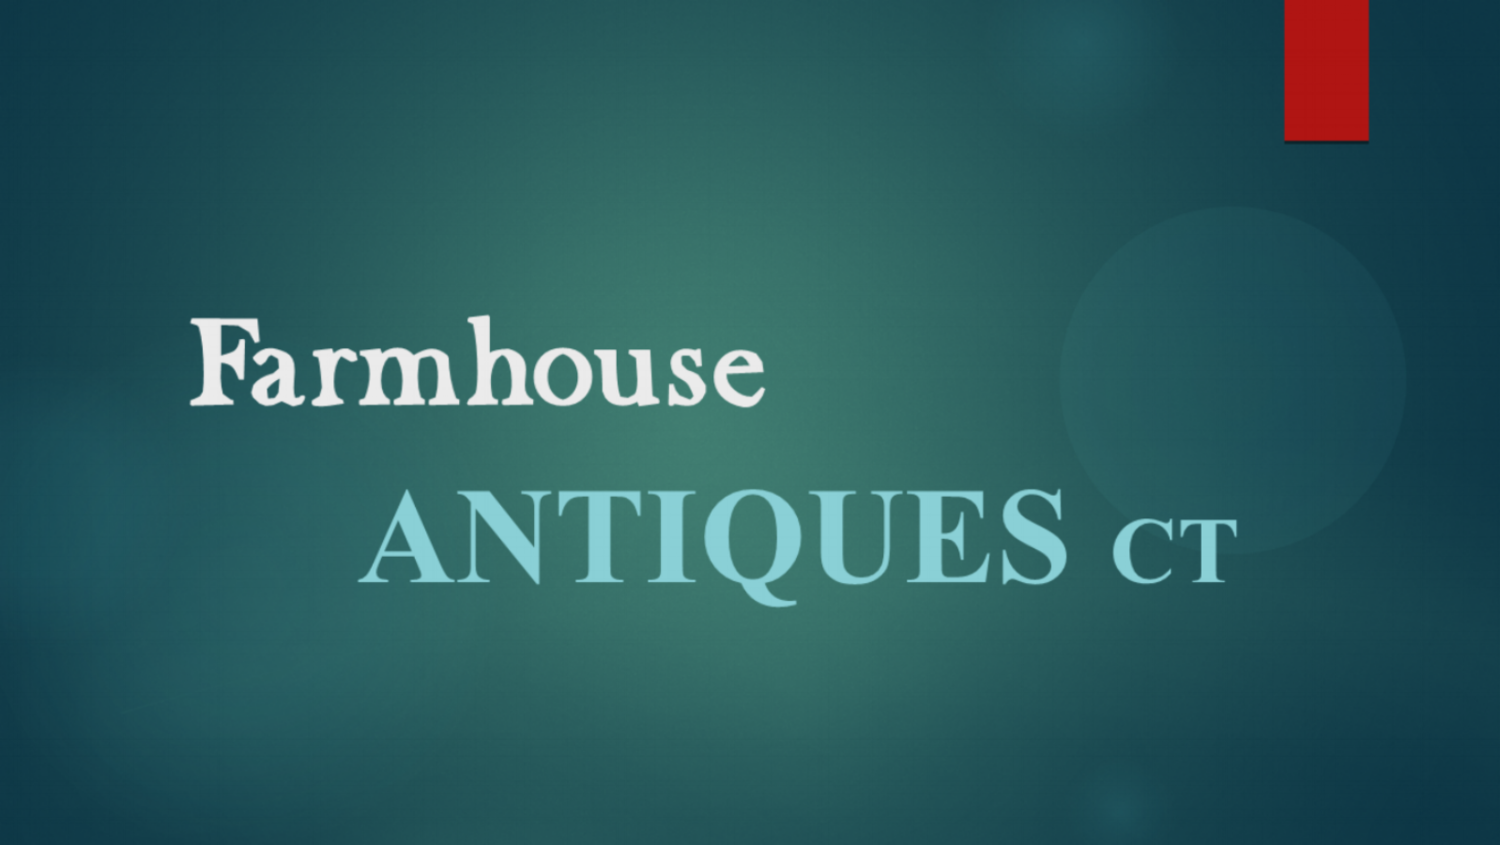 Farmhouse Antiques